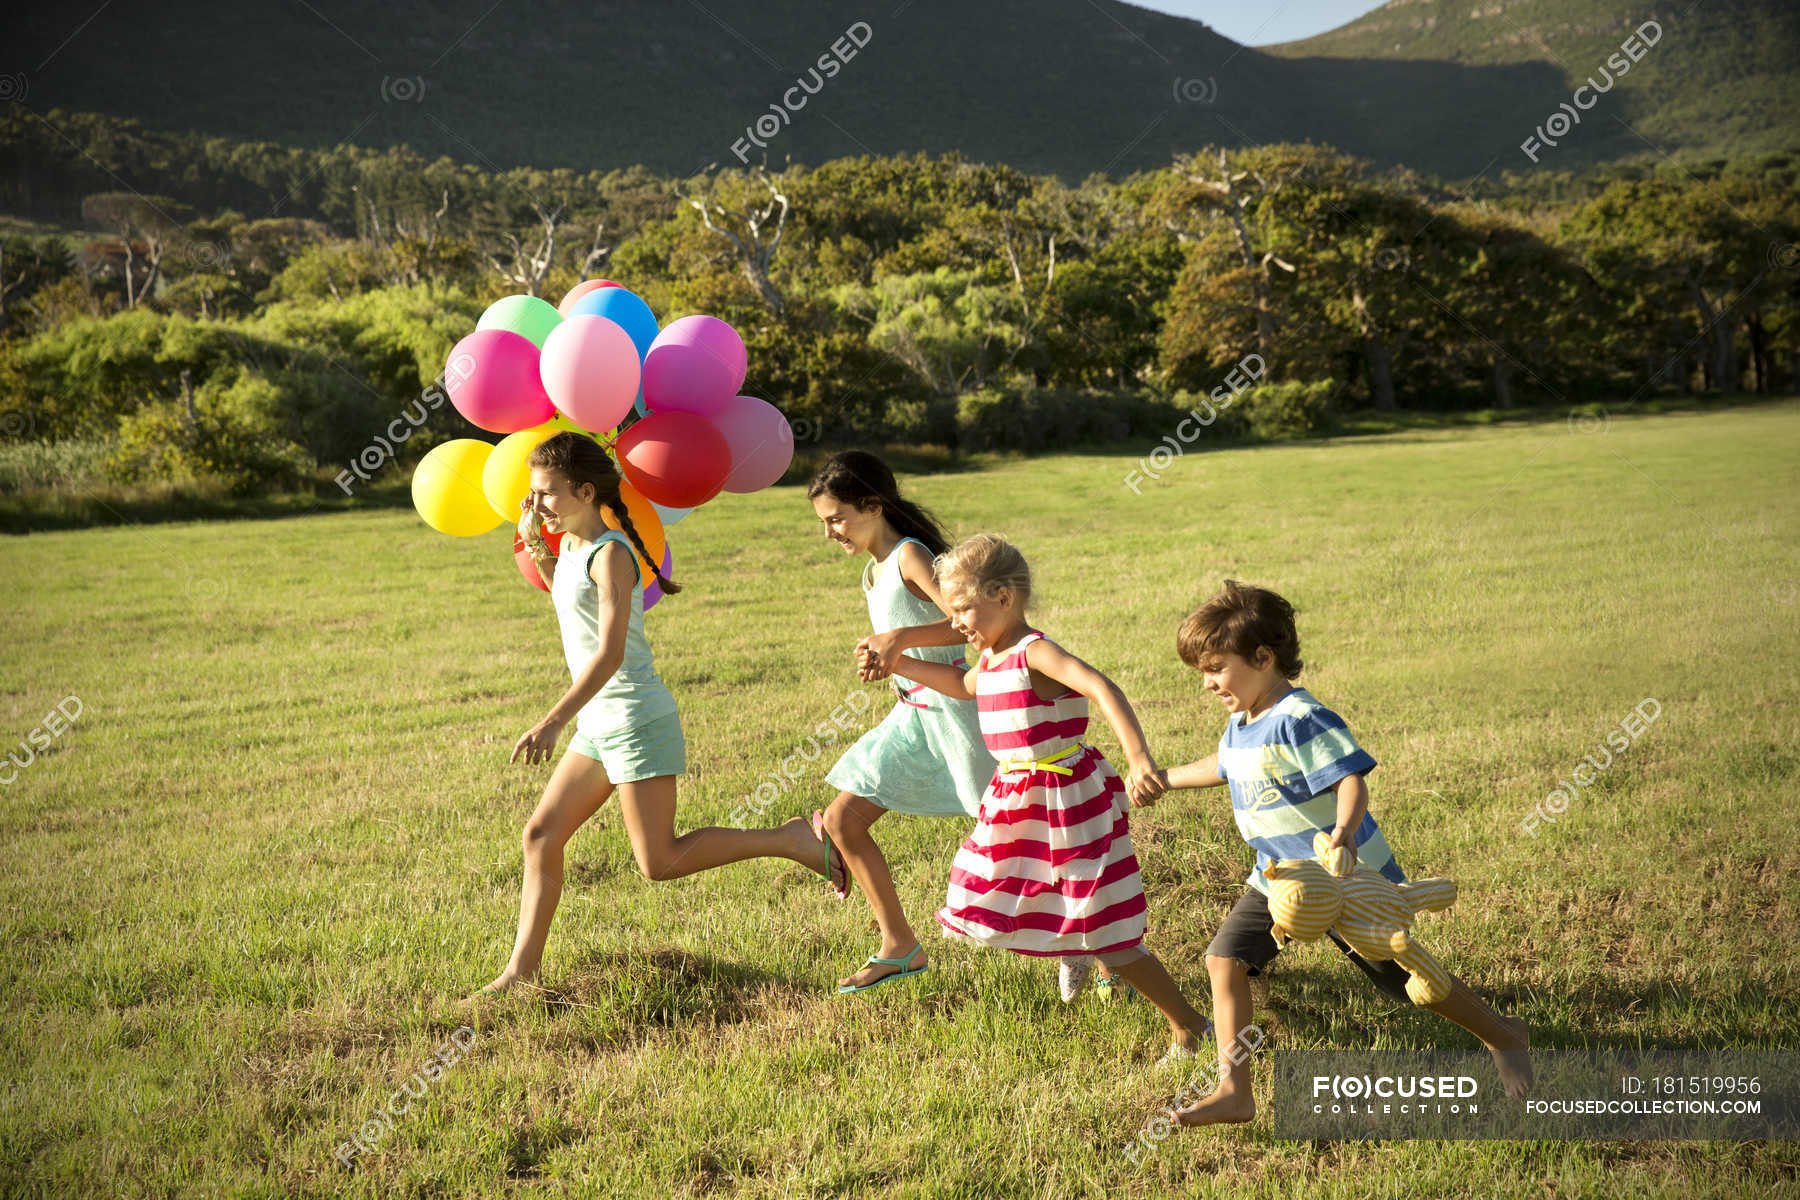 https://st.focusedcollection.com/14026668/i/1800/focused_181519956-stock-photo-happy-children-running-balloons-meadow.jpg